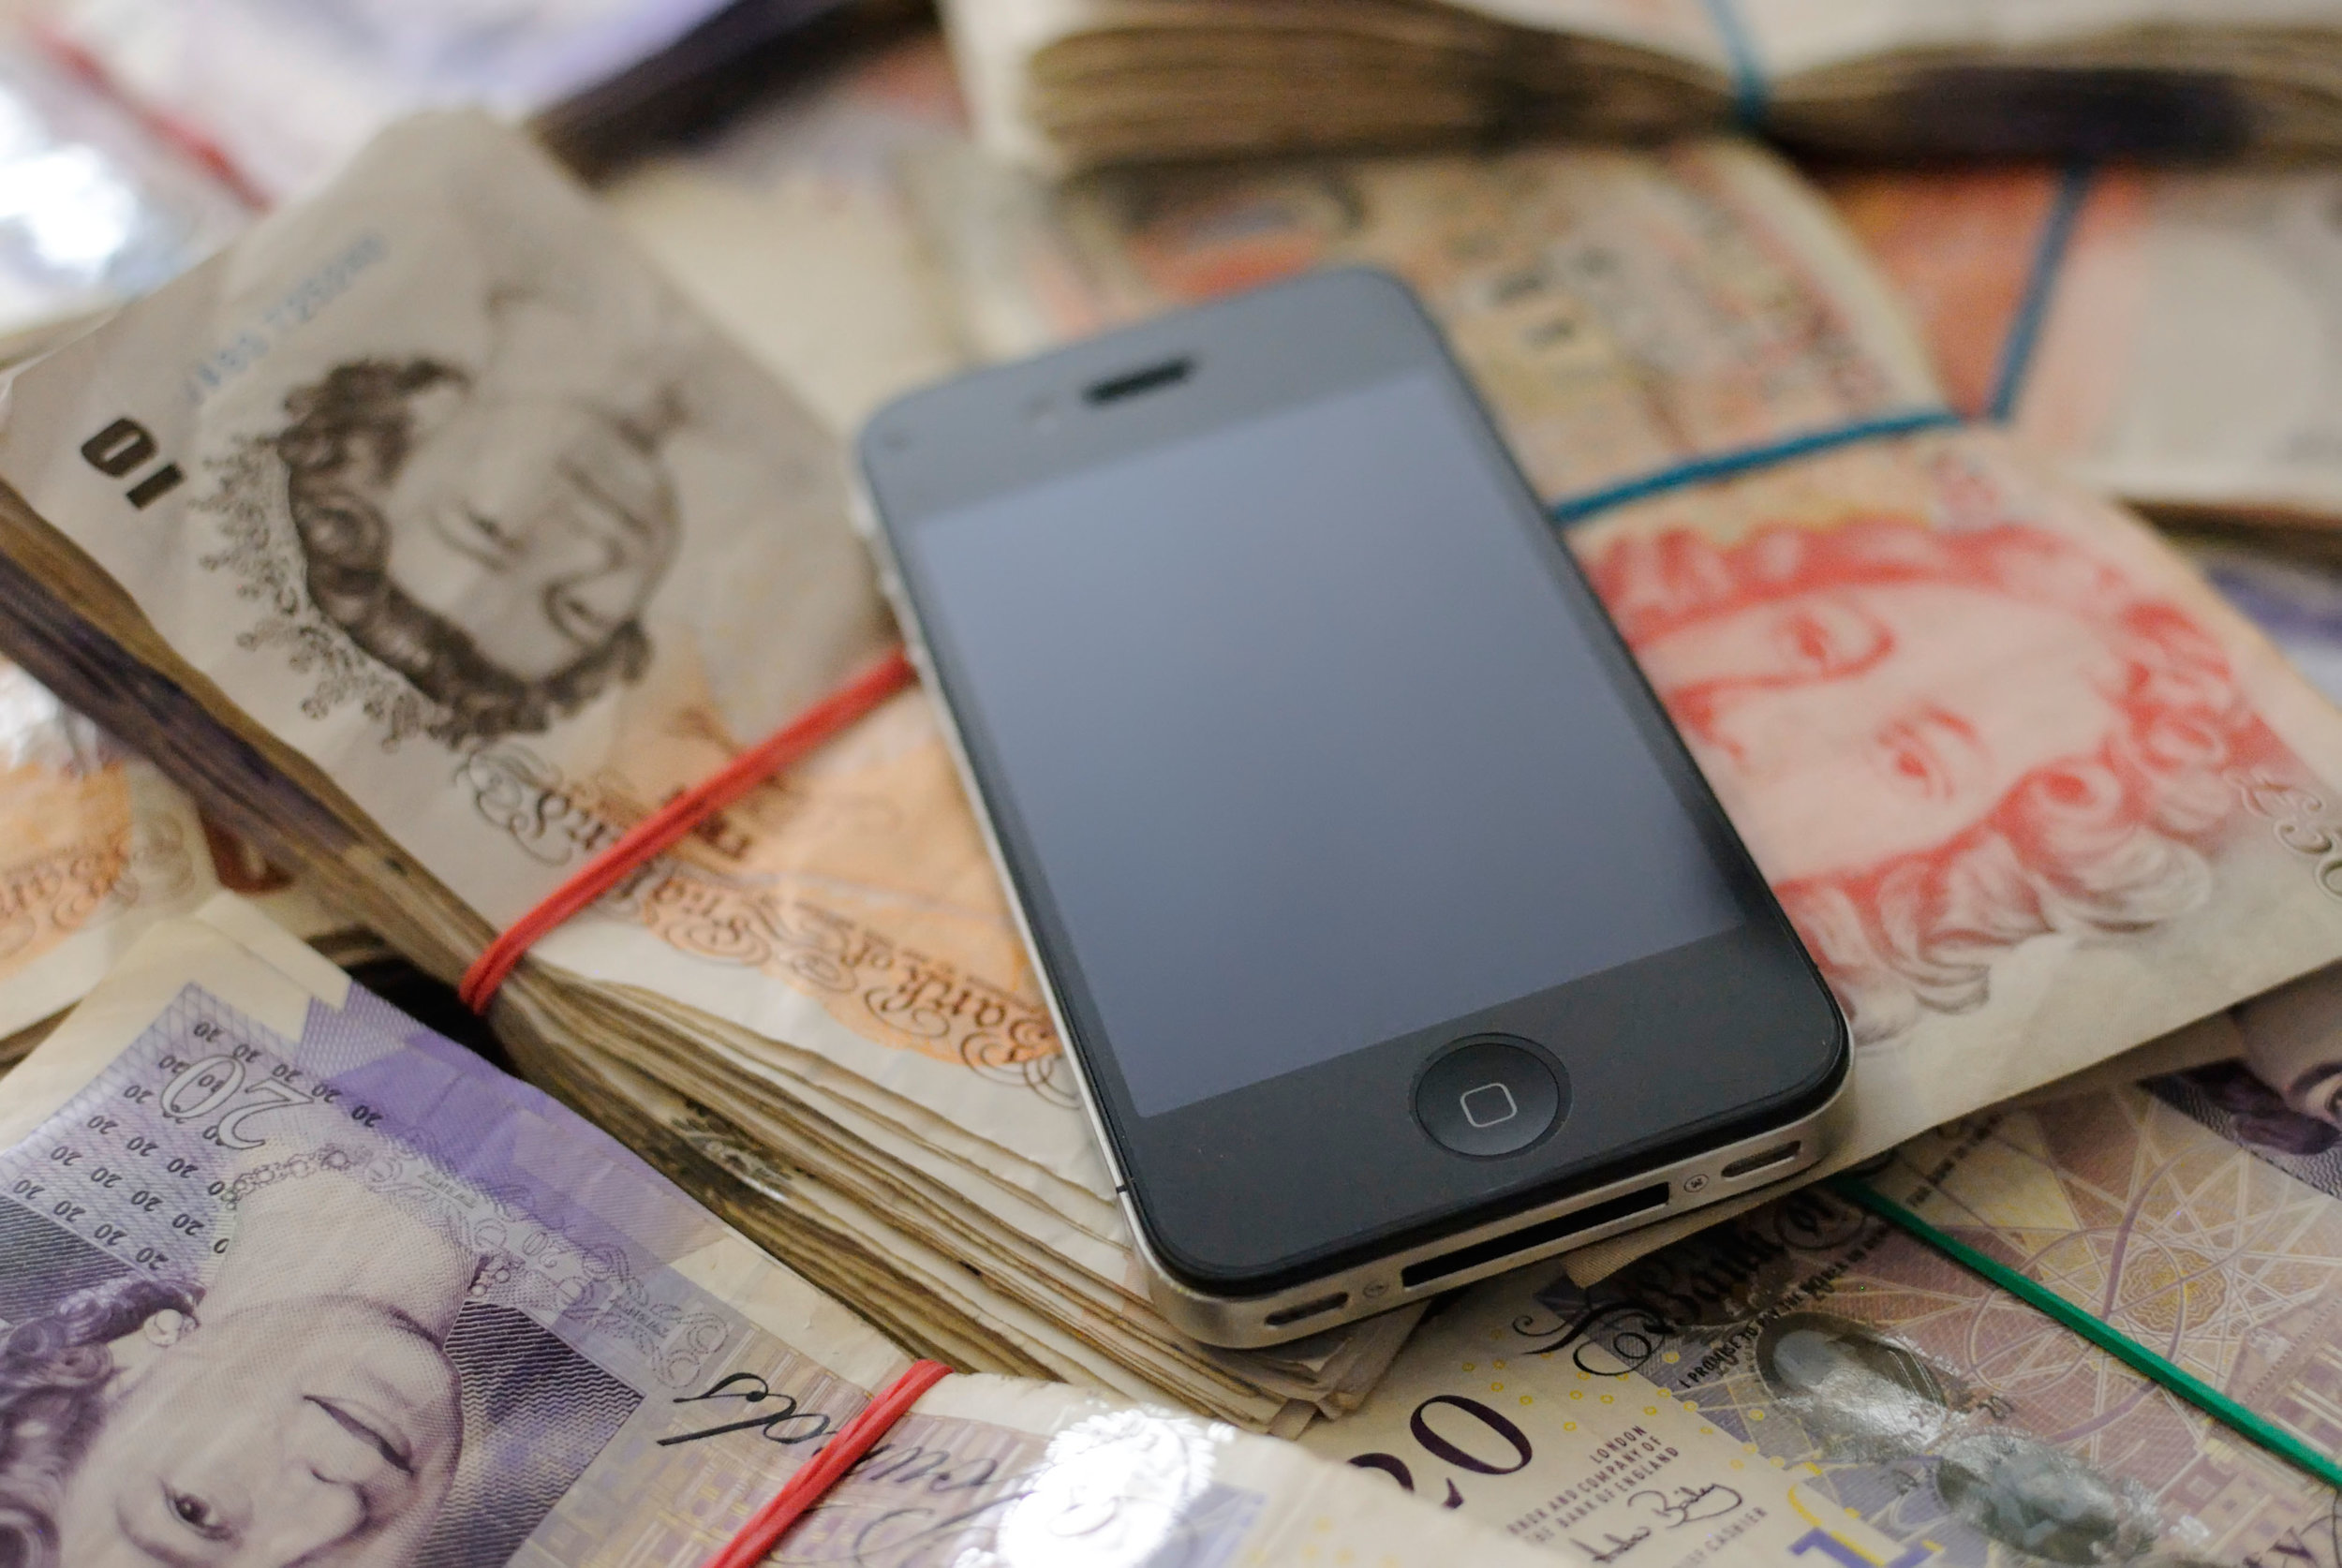 Cash and phone